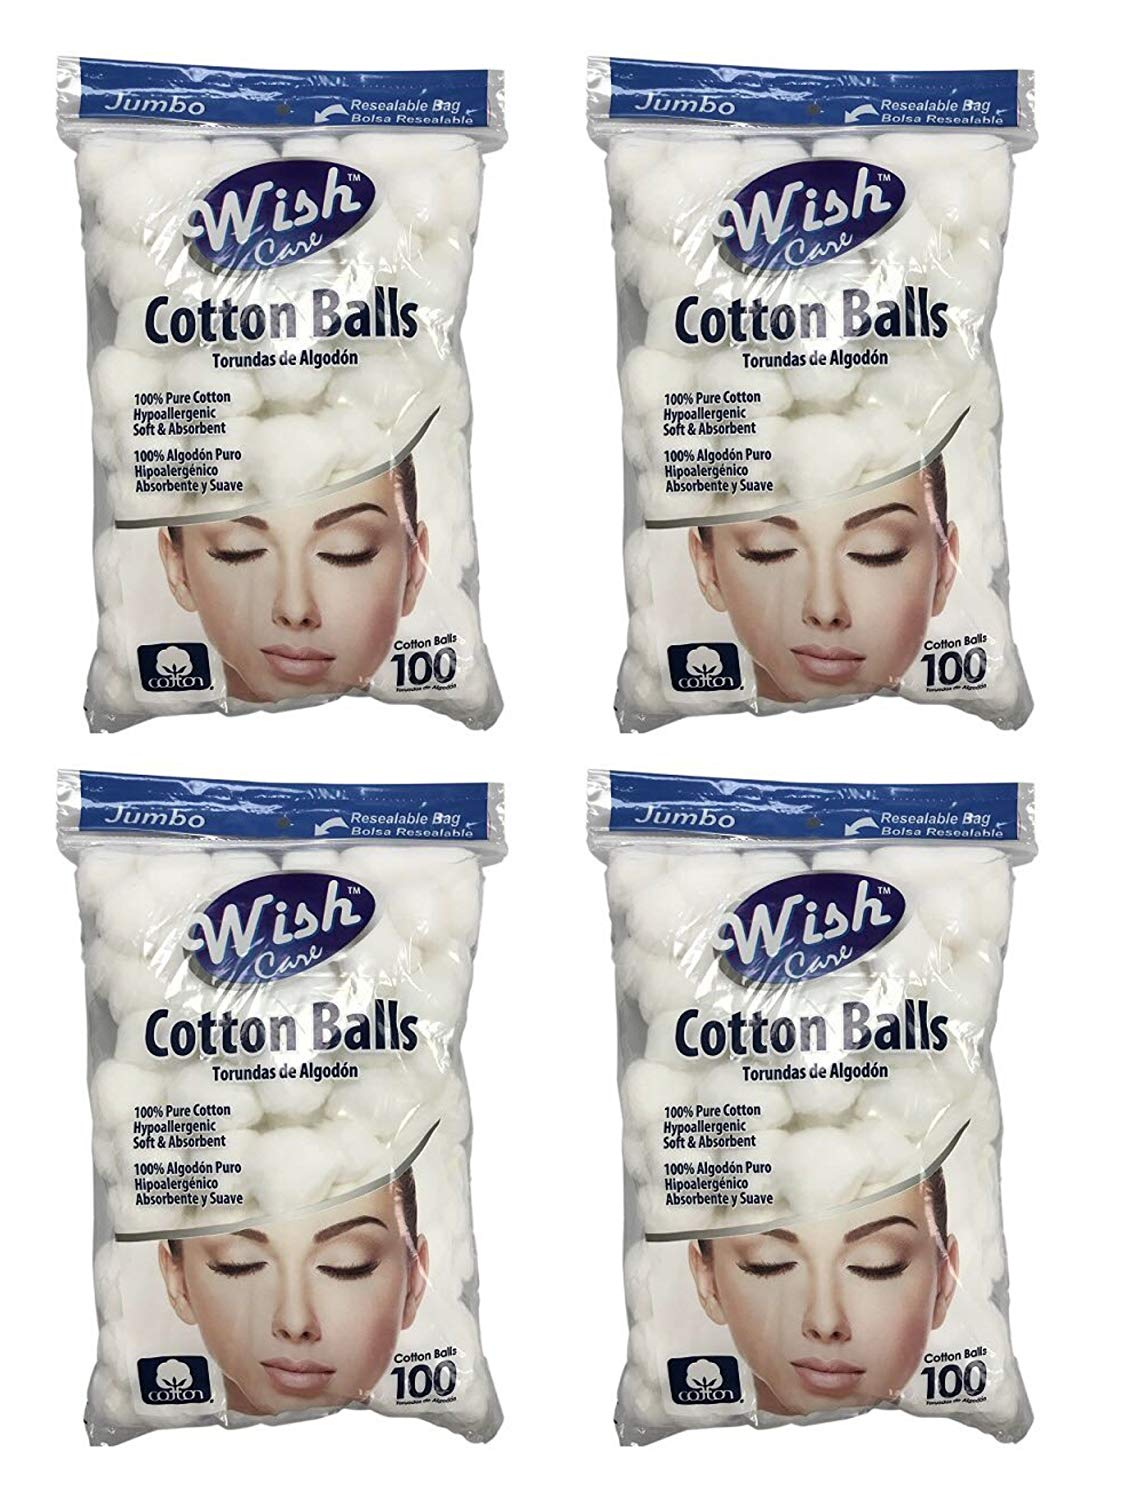 Wish Jumbo Hypoallergenic Soft & Absorbent Cotton Balls - 100% Pure Cotton - Pack of 4 (400 Total)